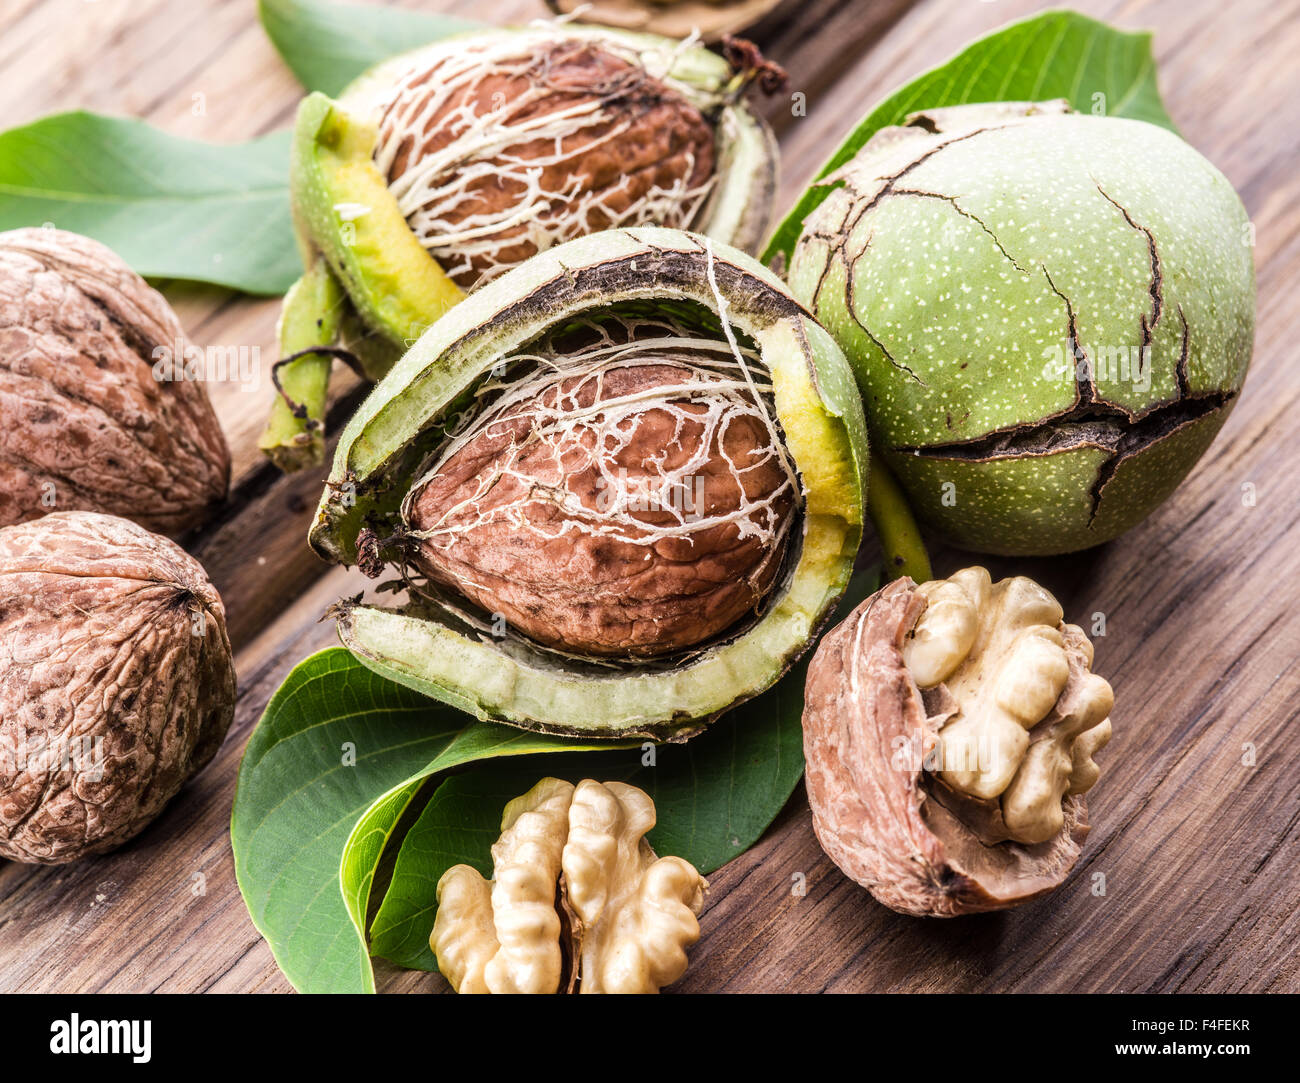 Walnut and walnut kernel on the wooden table. - Stock Image